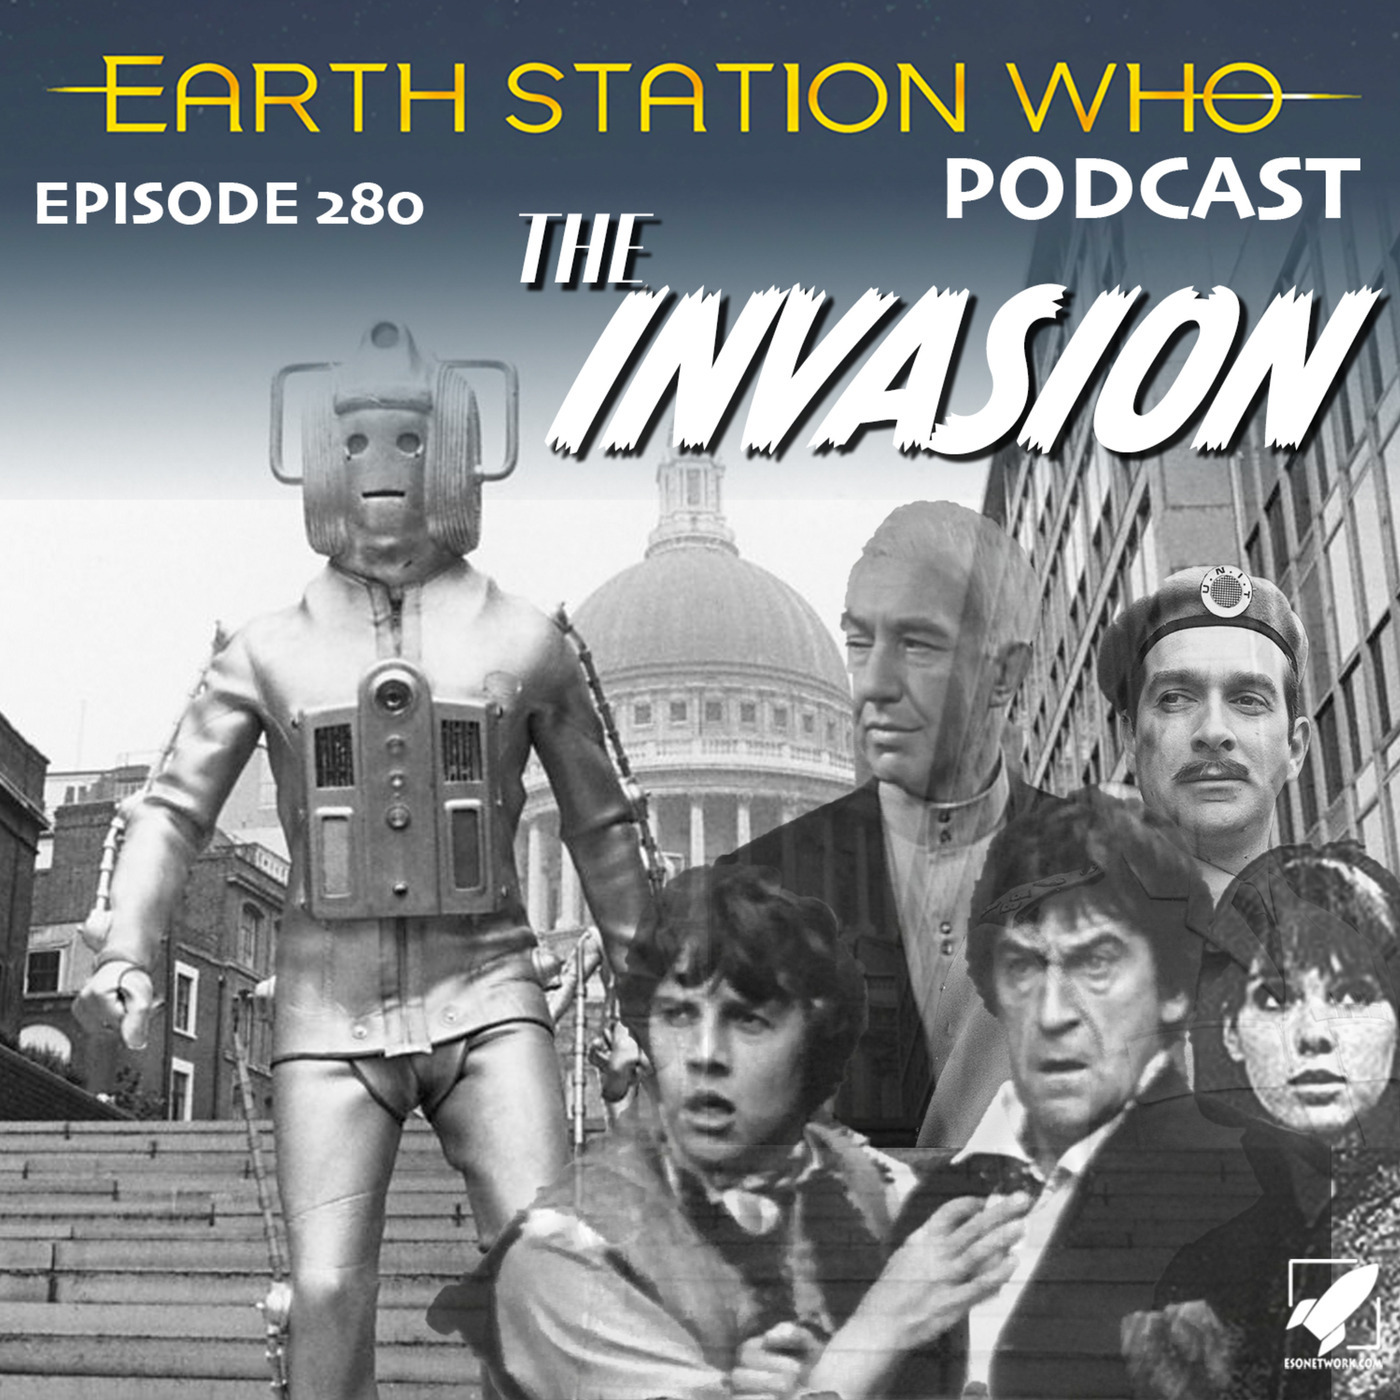 Earth Station Who: A Doctor Who Podcast invasion: Earth Station Who - The Invasion